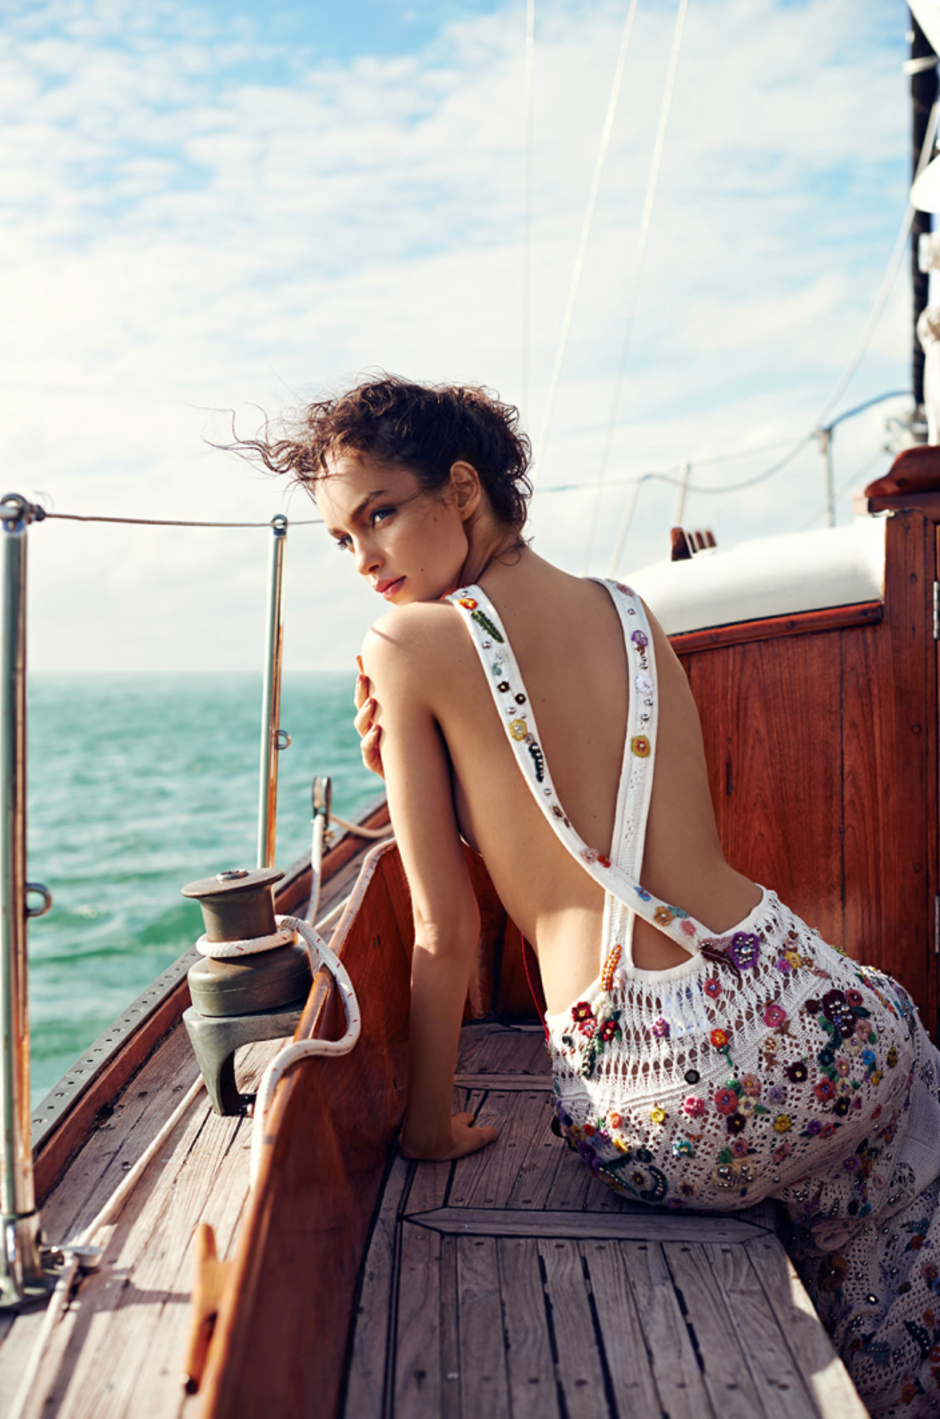 MODEL LUMA GROTHE SAILING IN MEXICO 10